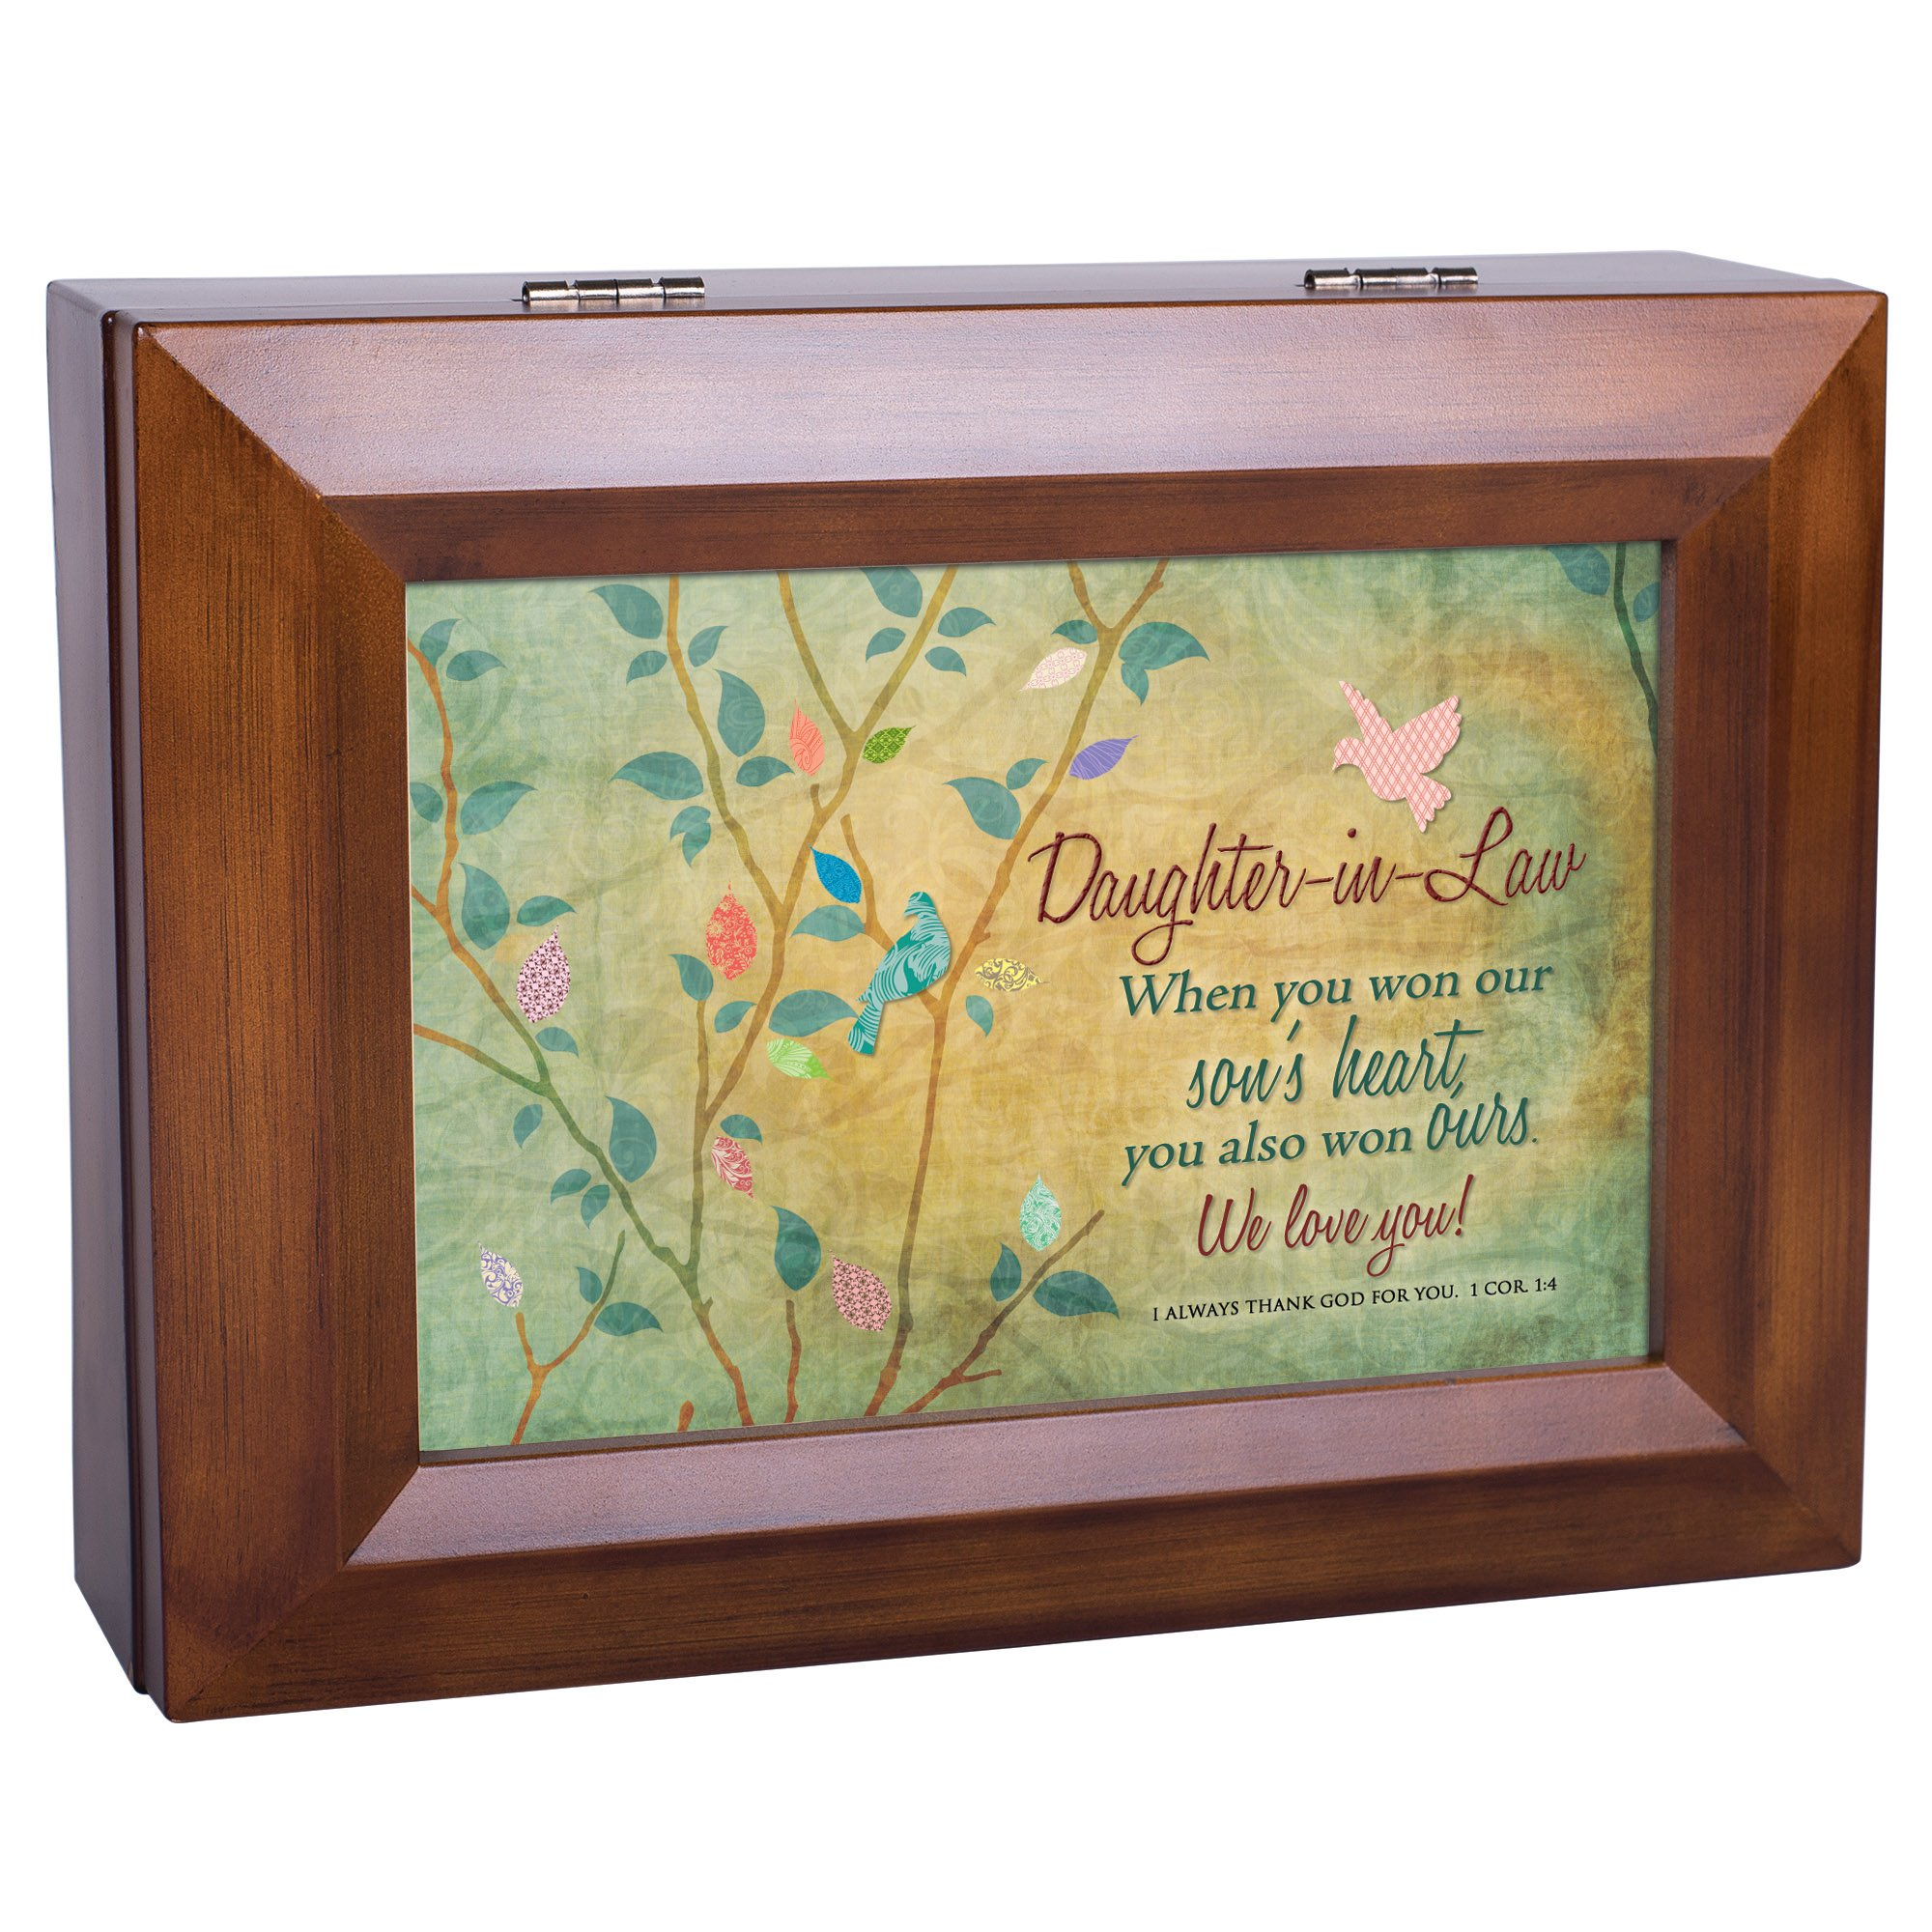 Cottage Garden Daughter-in-Law We Love You Wood Finish Jewelry Music Box - Plays Tune You Are My Sunshine by Cottage Garden (Image #3)